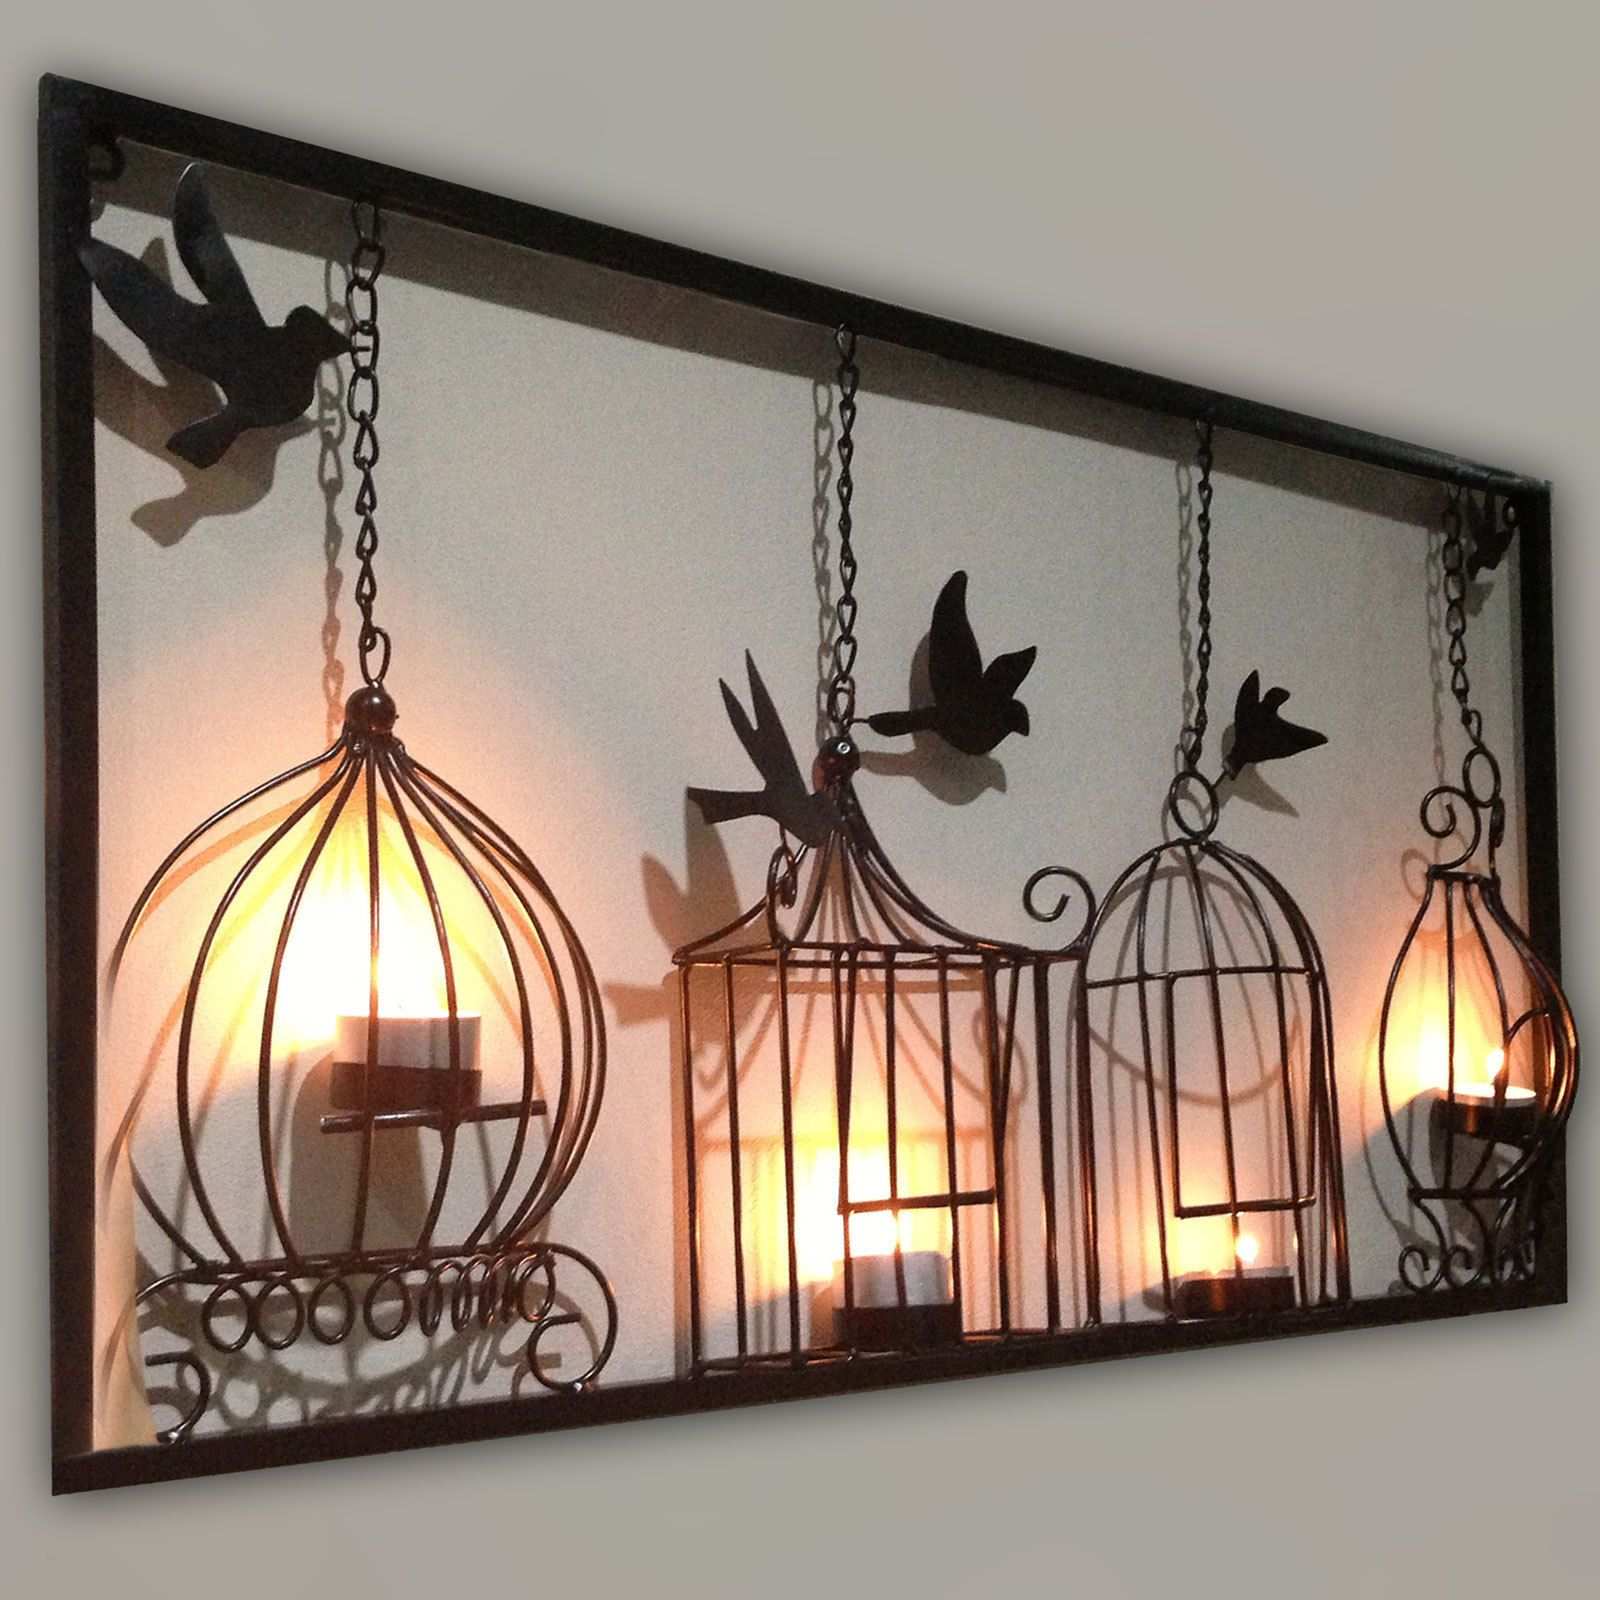 Black Wrought Iron Wall Art Enchanting Birdcage Tea Light Wall Art Metal Wall Hanging Candle Holder Black Inspiration Design